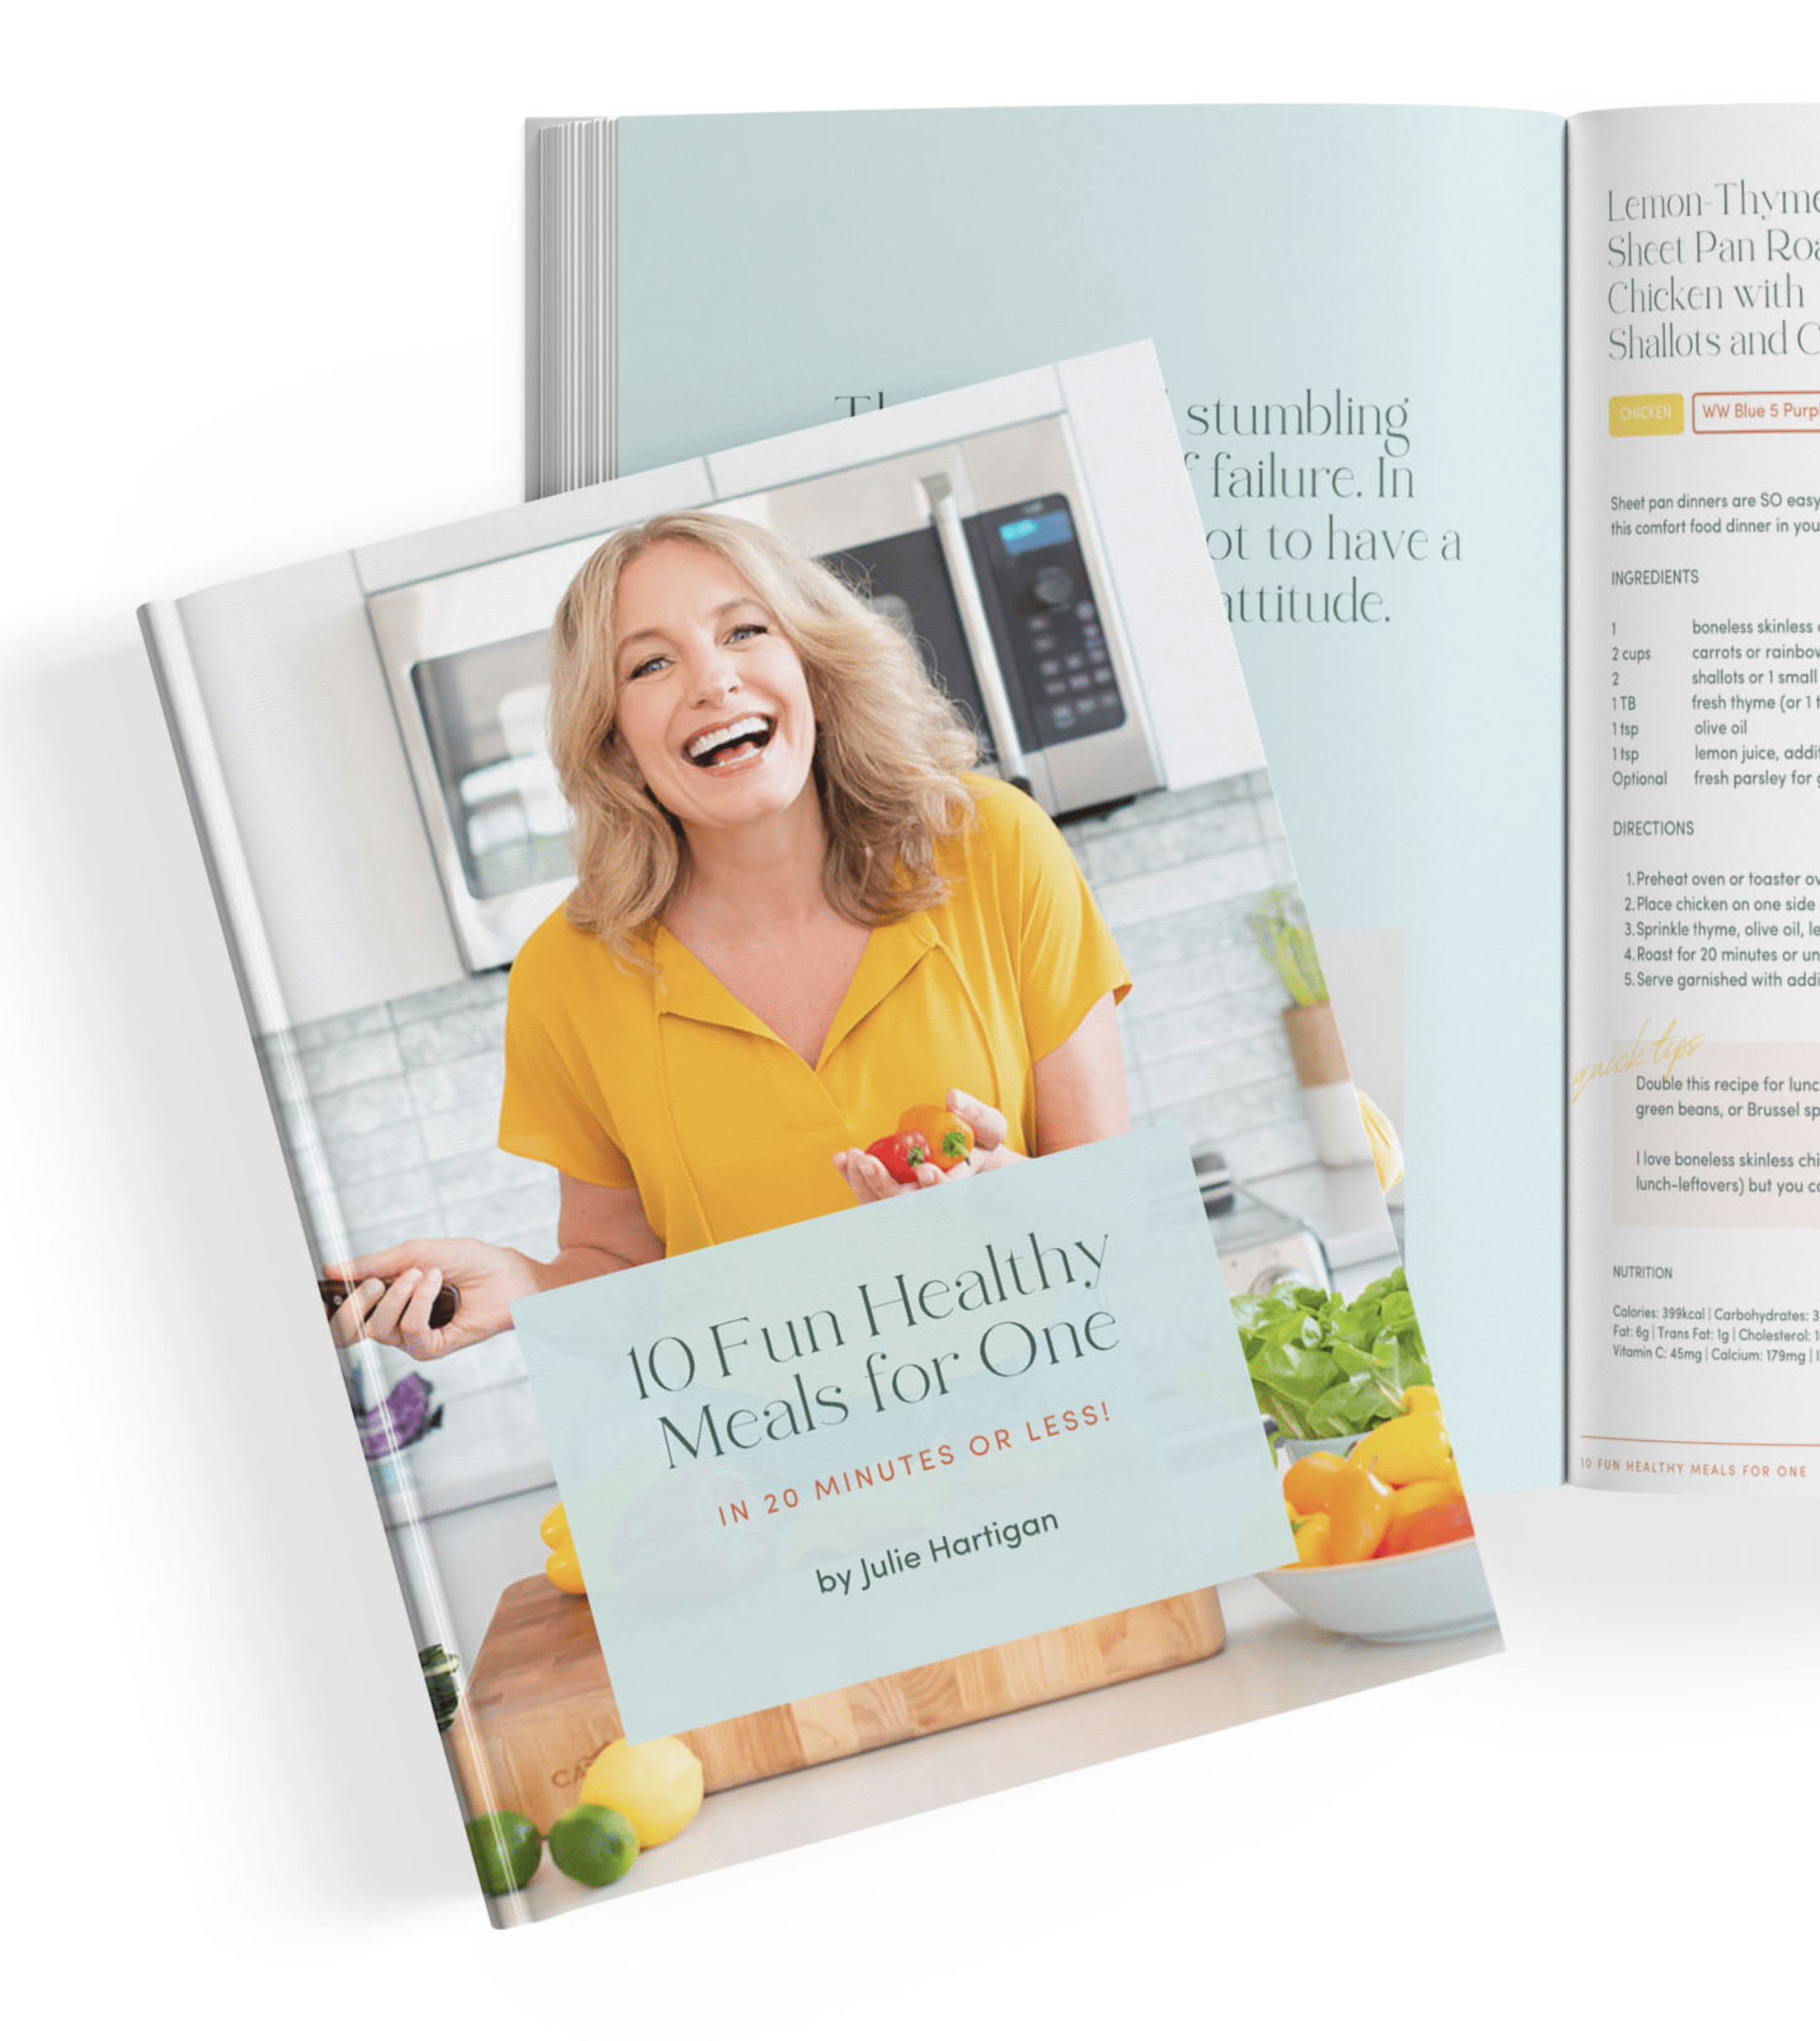 Free Download 10 Free and Healthy Meals For One